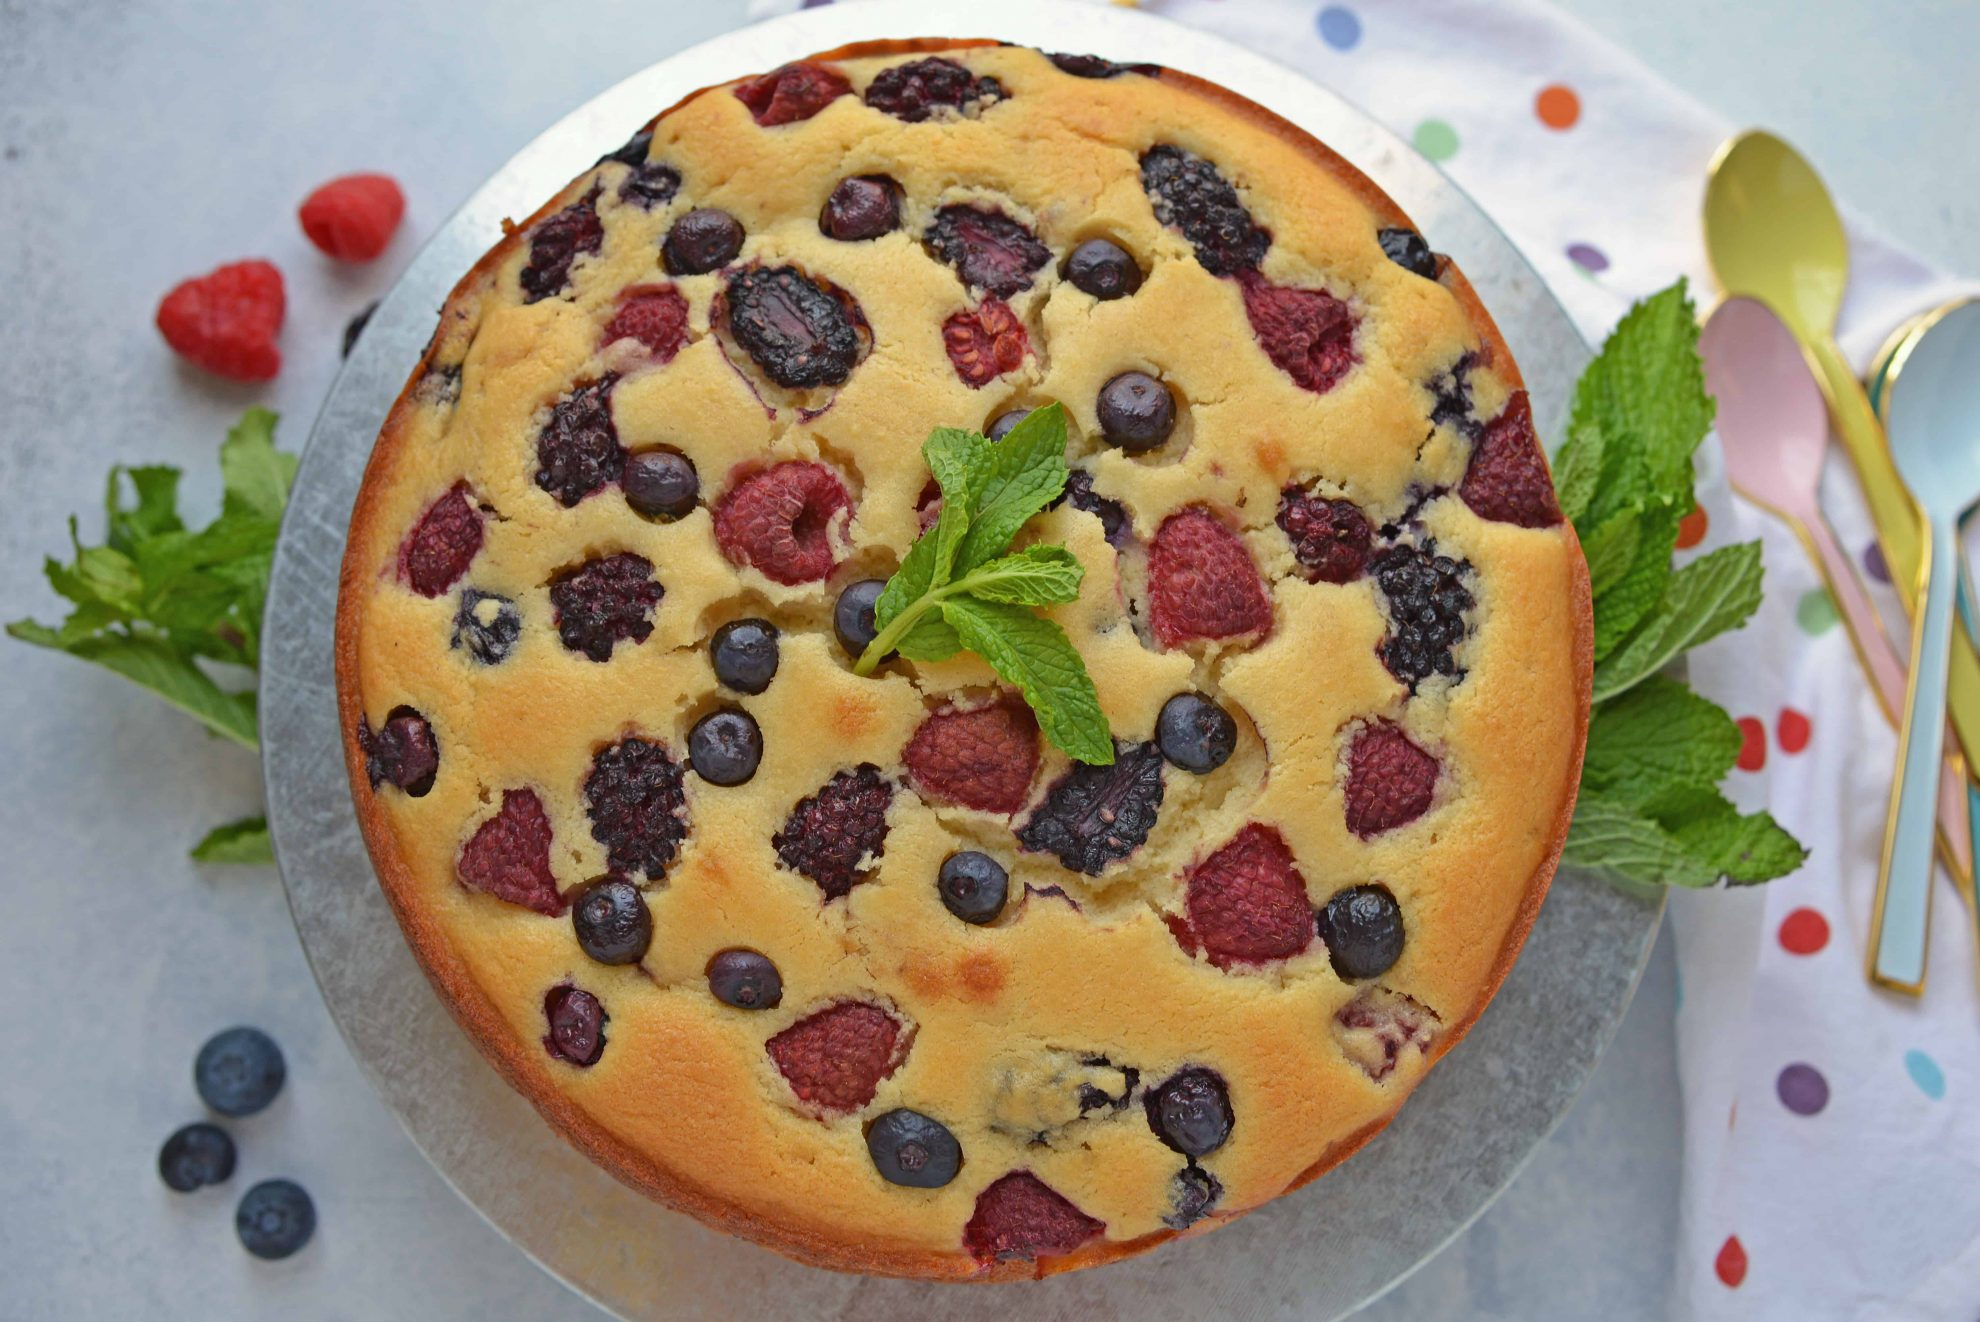 Berry Ricotta Cheesecake is a crustless homemade cheesecake recipe using smooth ricotta and fresh or frozen berries. The ultimate fruit cheesecake recipe!#homemadecheesecakerecipe #ricottacheesecake www.savoryexperiments.com